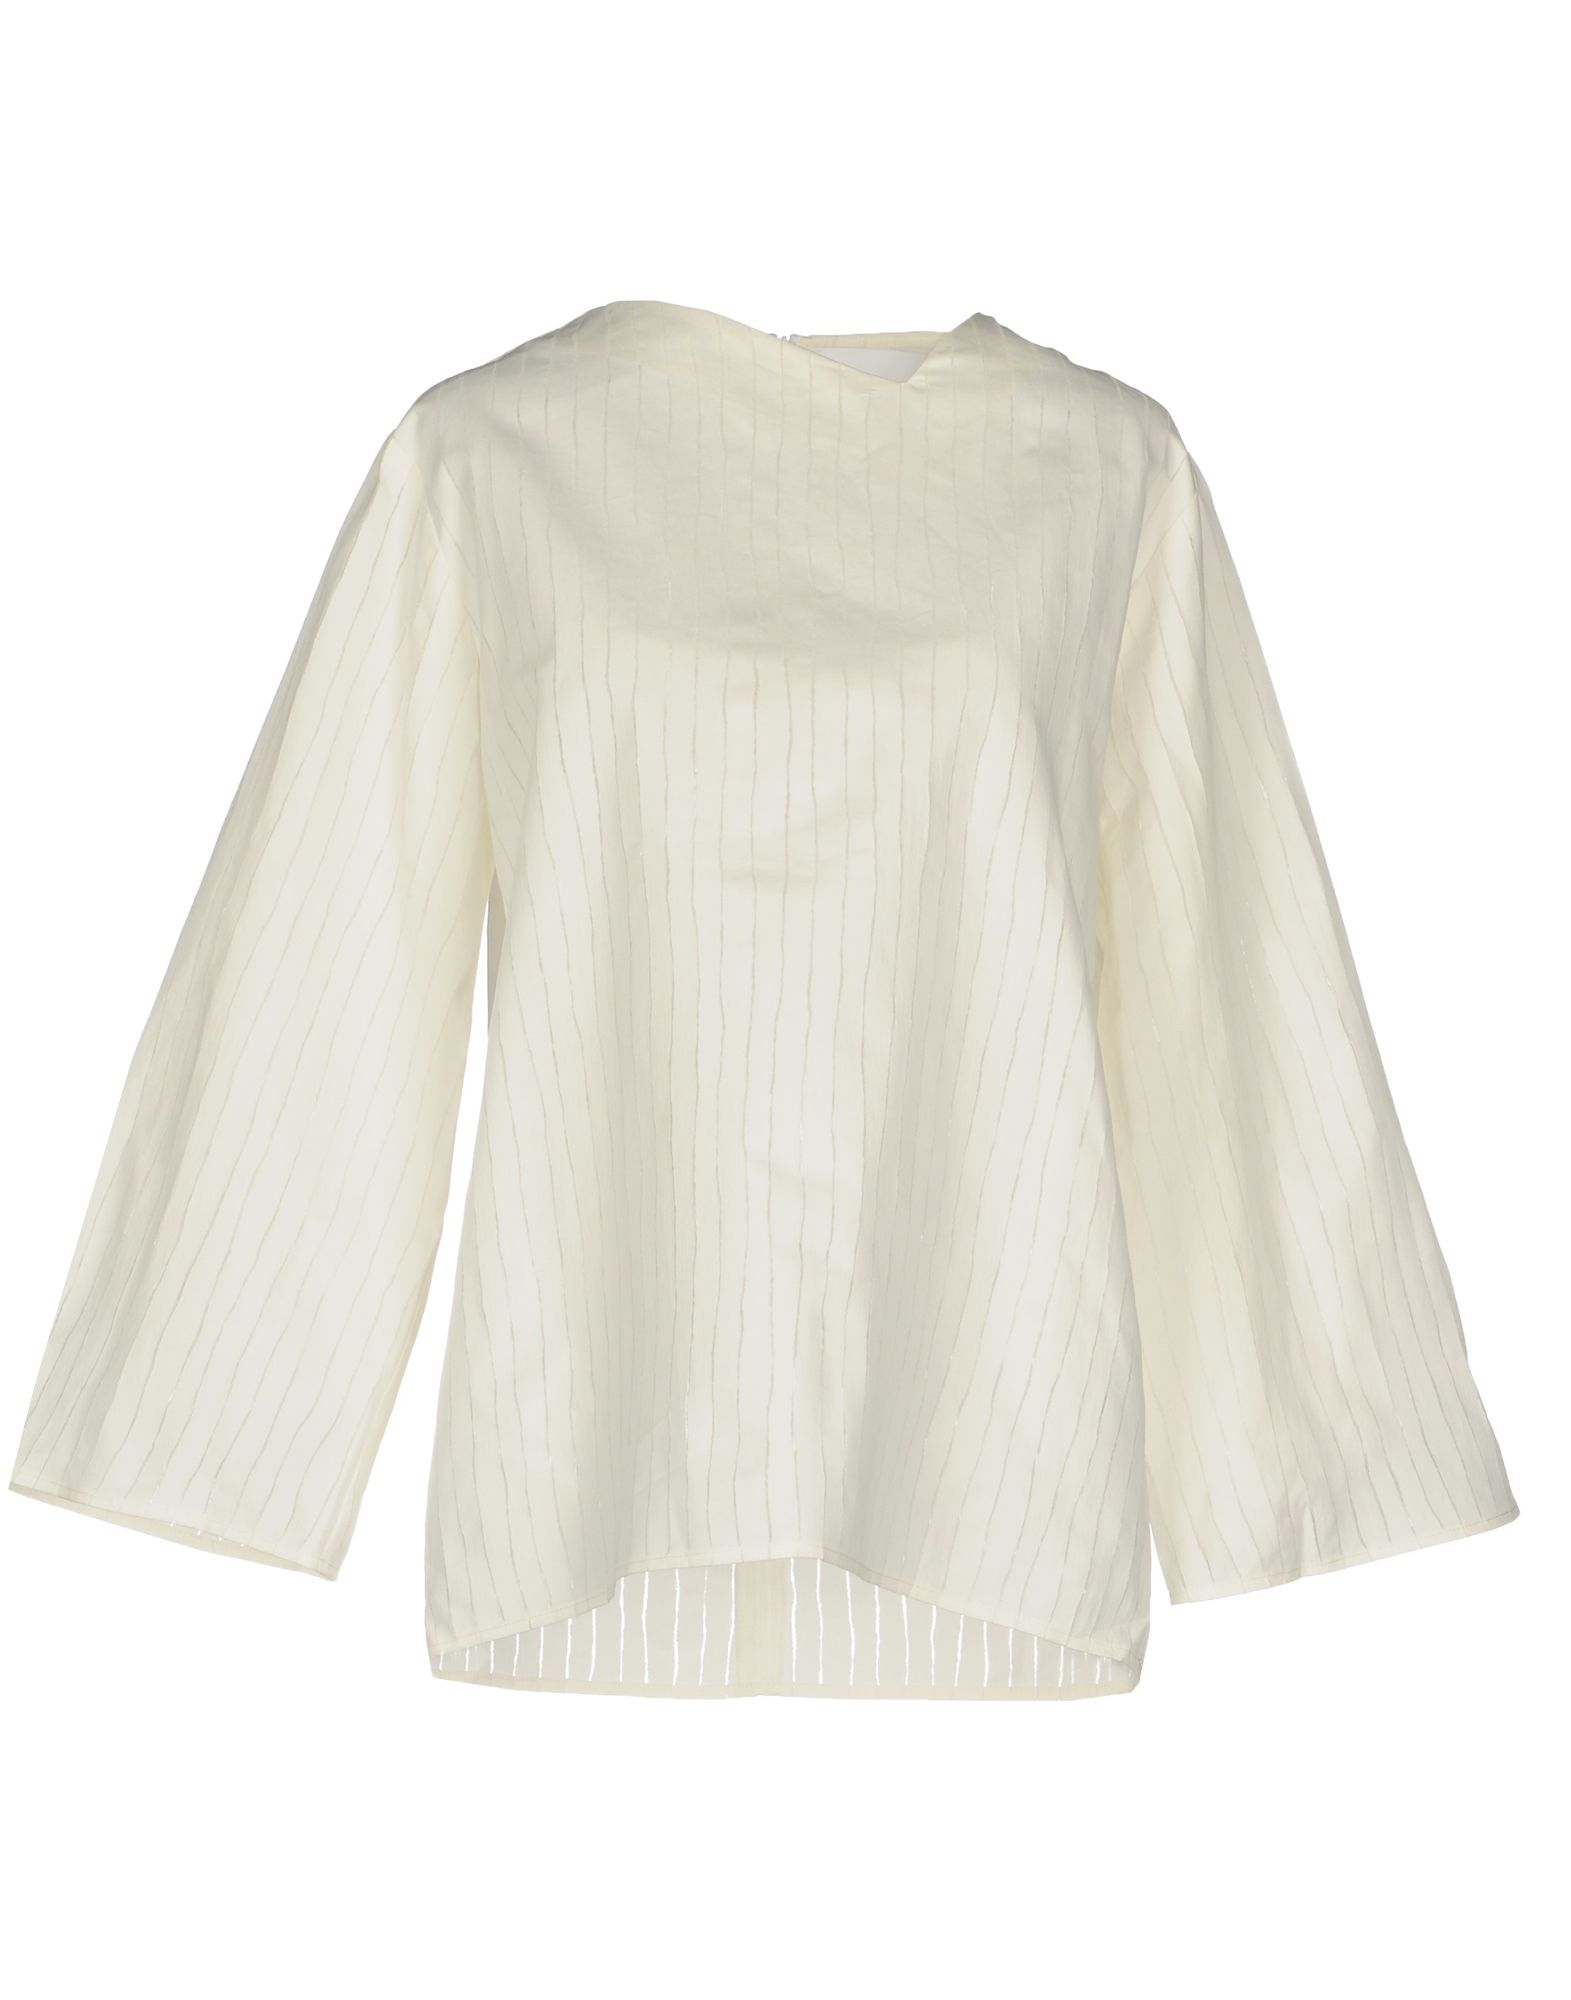 CHARLIE MAY Solid Color Shirts & Blouses in Ivory